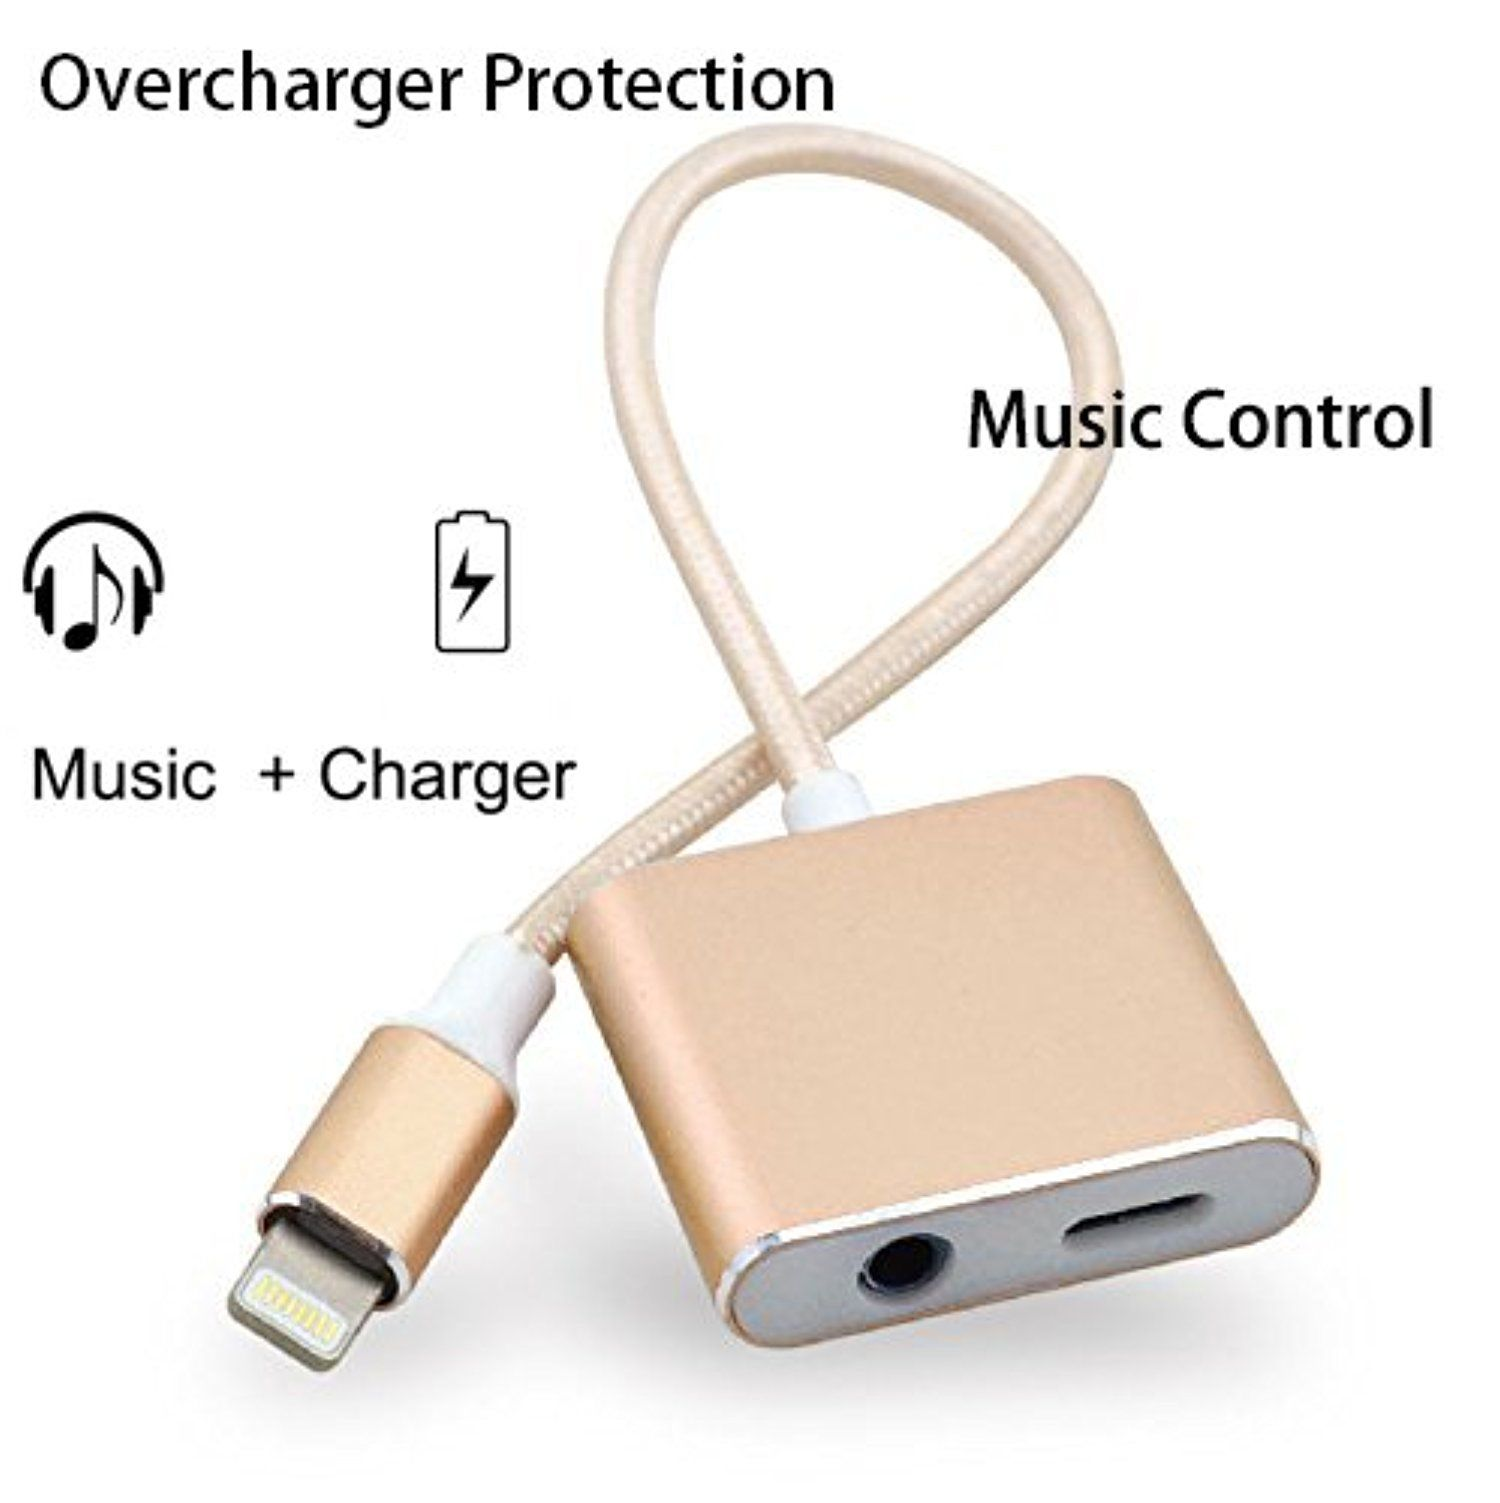 Overcharge Protection Lightning Adapter For Iphone 7 Fast Charger Up To 5v 2a And 3 5mm Earph Accessoires Iphone Accessoires Iphone 5s Accessoires De Telephone